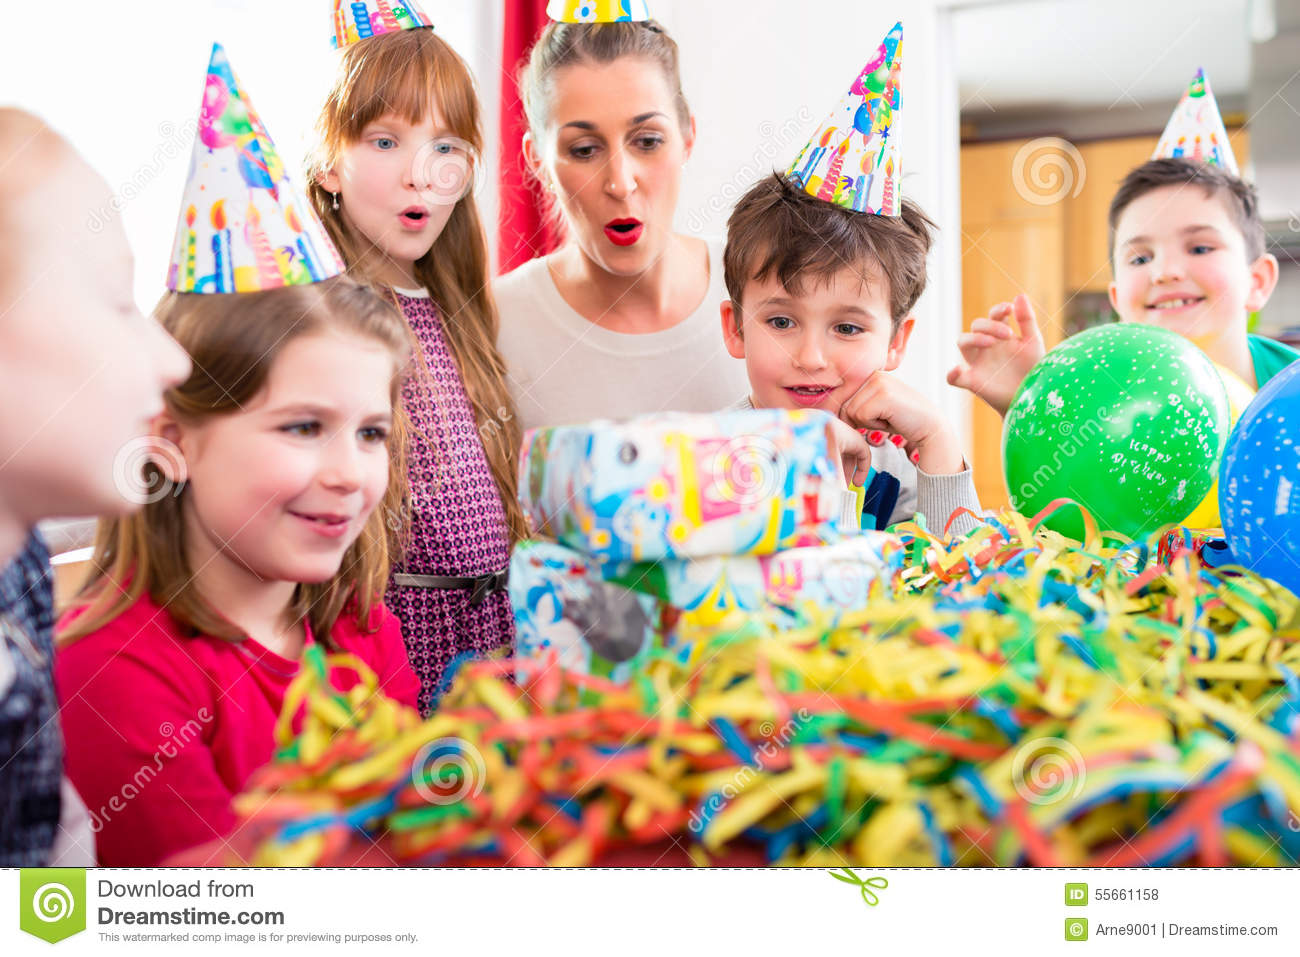 Child Unwrapping Birthday Gift With Friends